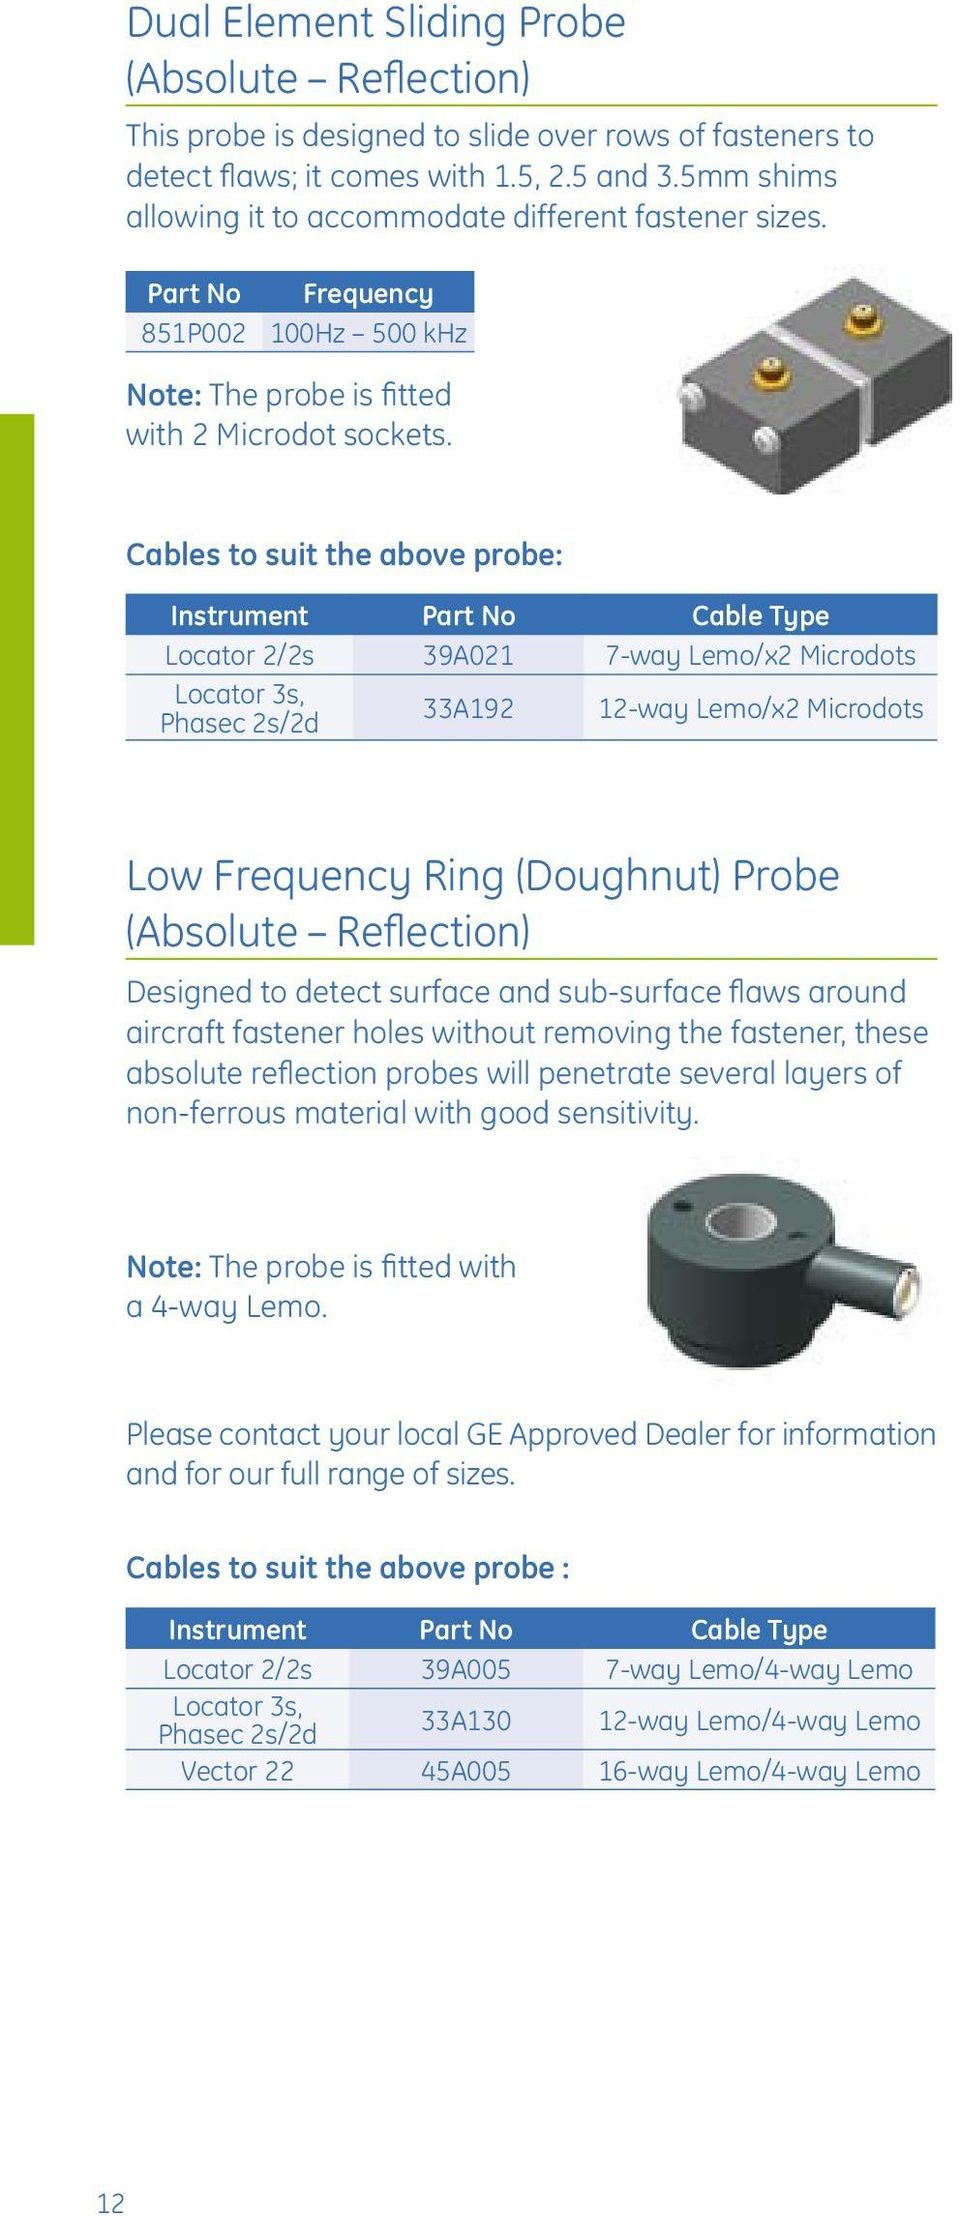 Cables to suit the above probe: Locator 2/2s 39A021 7-way Lemo/x2 Microdots 33A192 12-way Lemo/x2 Microdots Low Frequency Ring (Doughnut) Probe (Absolute Reflection) Designed to detect surface and